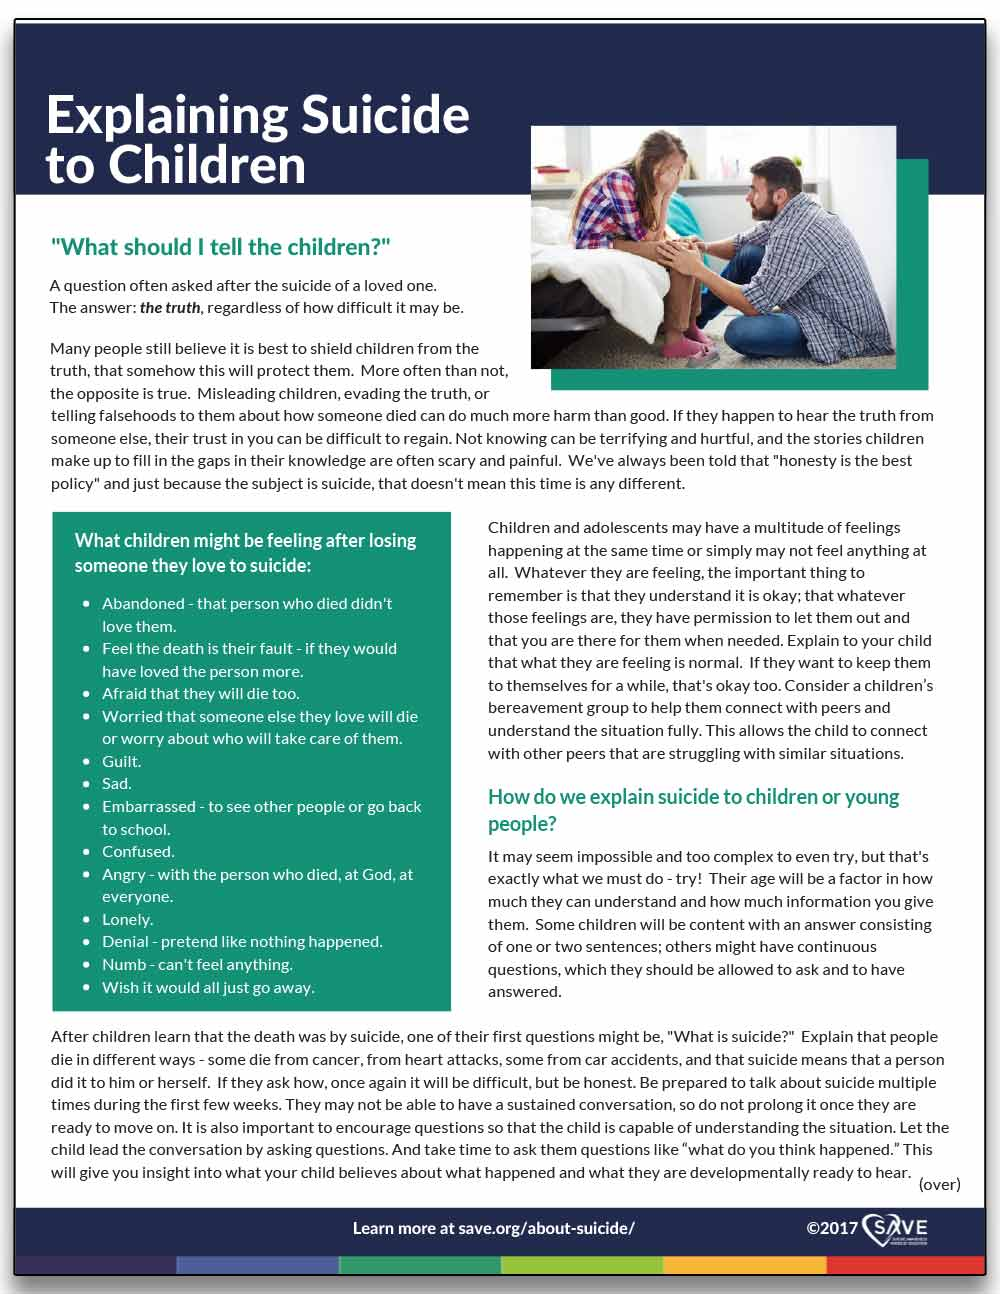 information sheet about explaining suicide to children